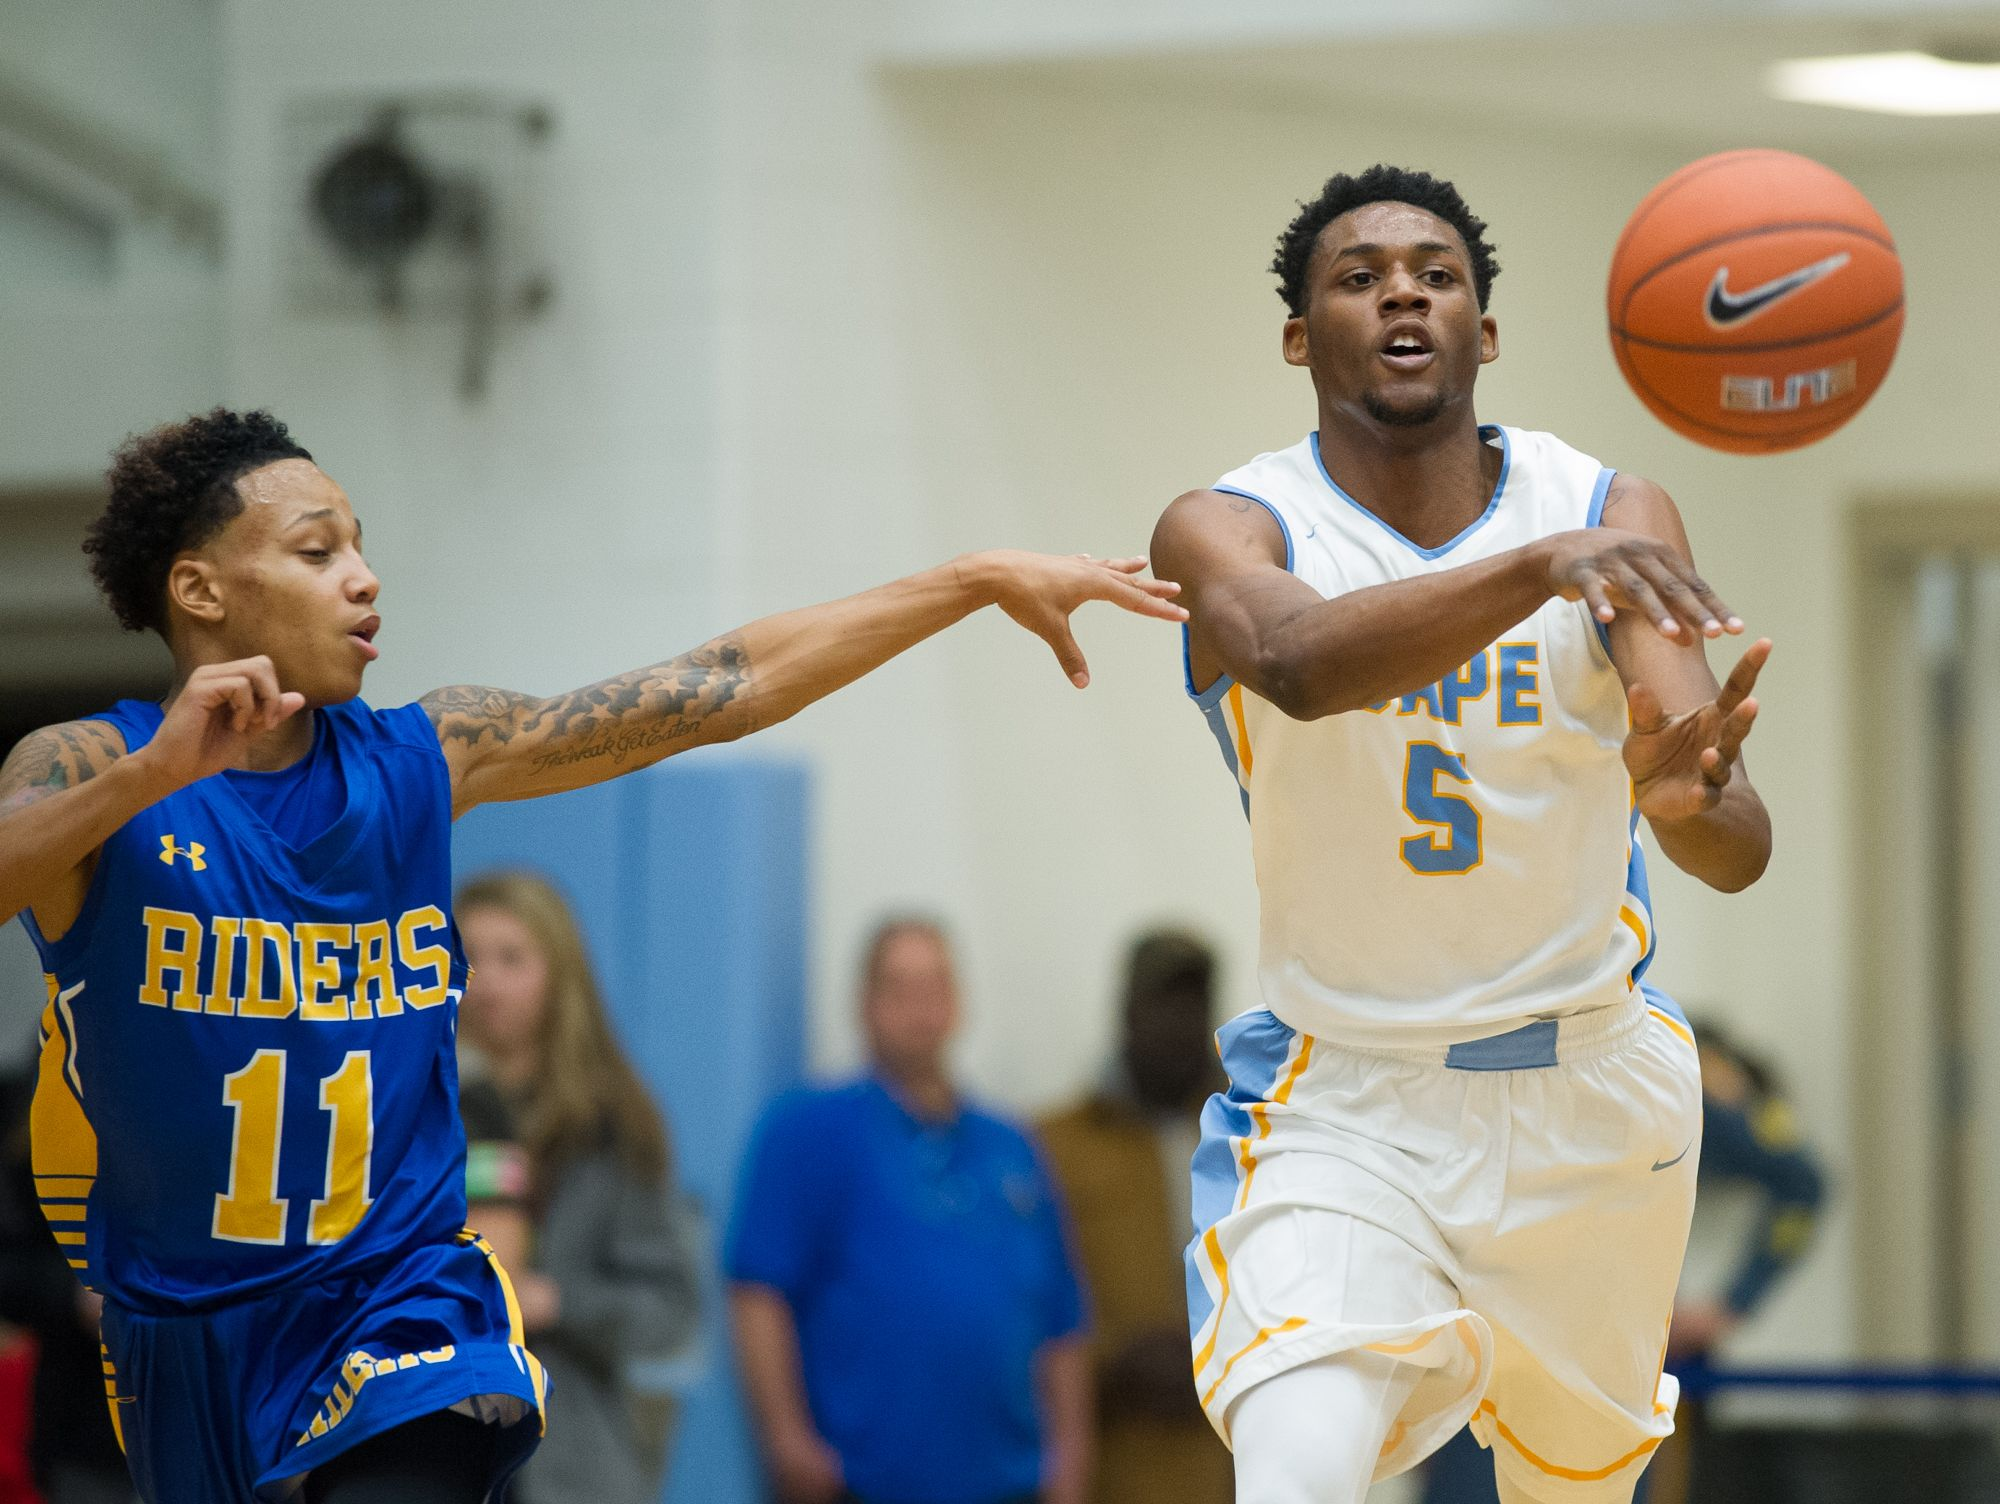 Cape Henlopen's Randy Rickards (5) passes the ball down the court in their home game against Caesar Rodney.